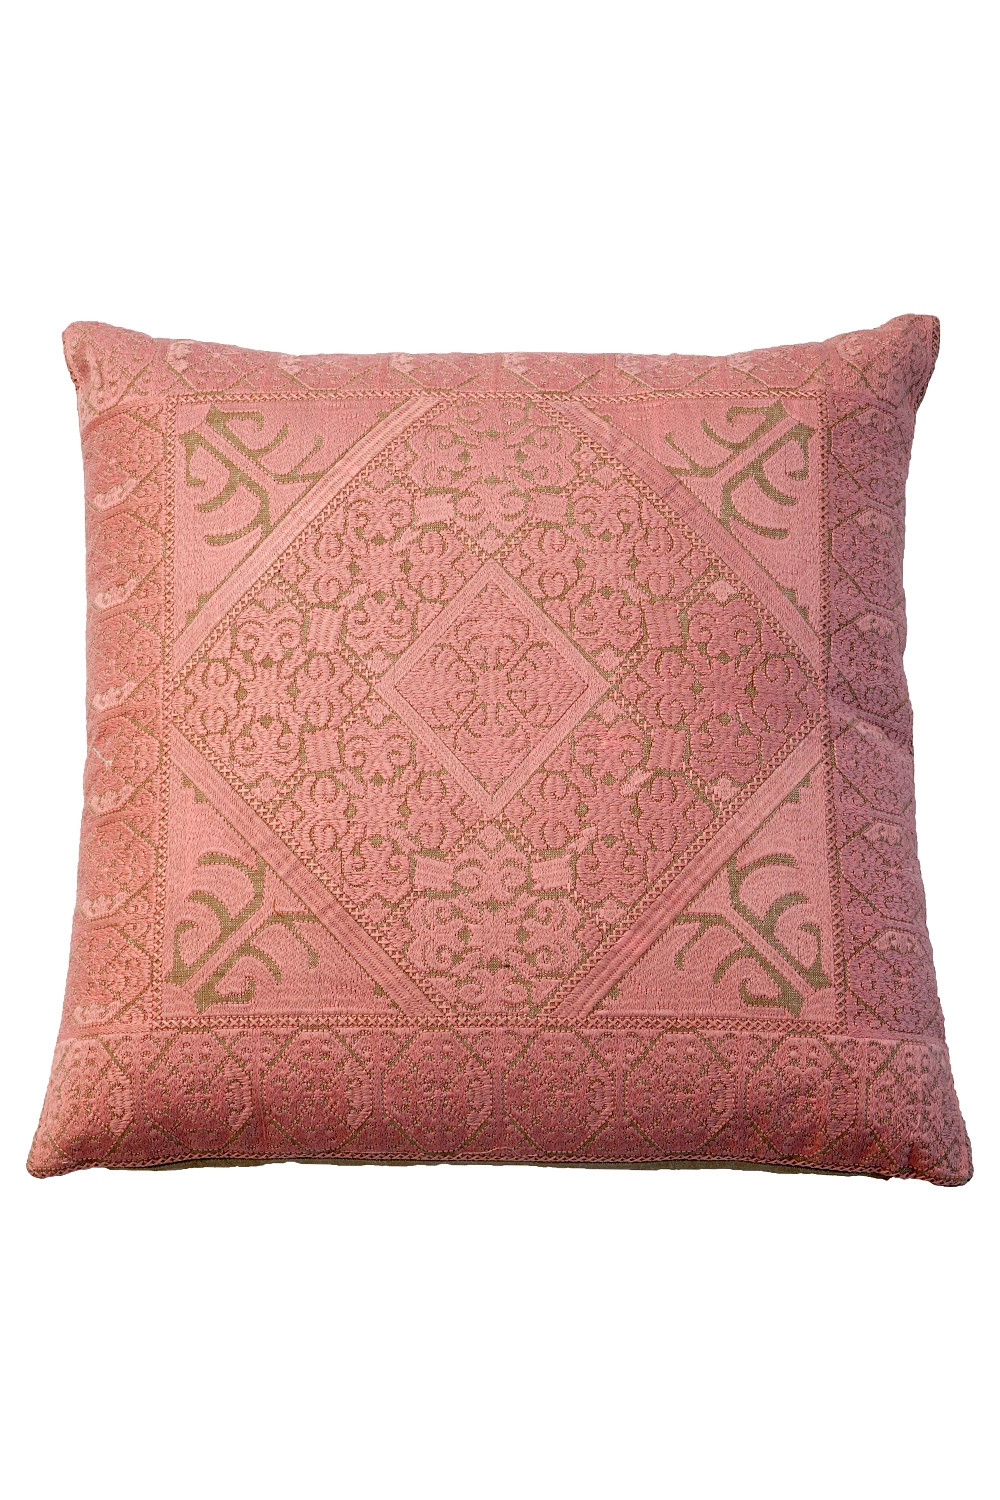 Salmon Pink Cotton Chicken Kaari Pillow Online At Rugs And